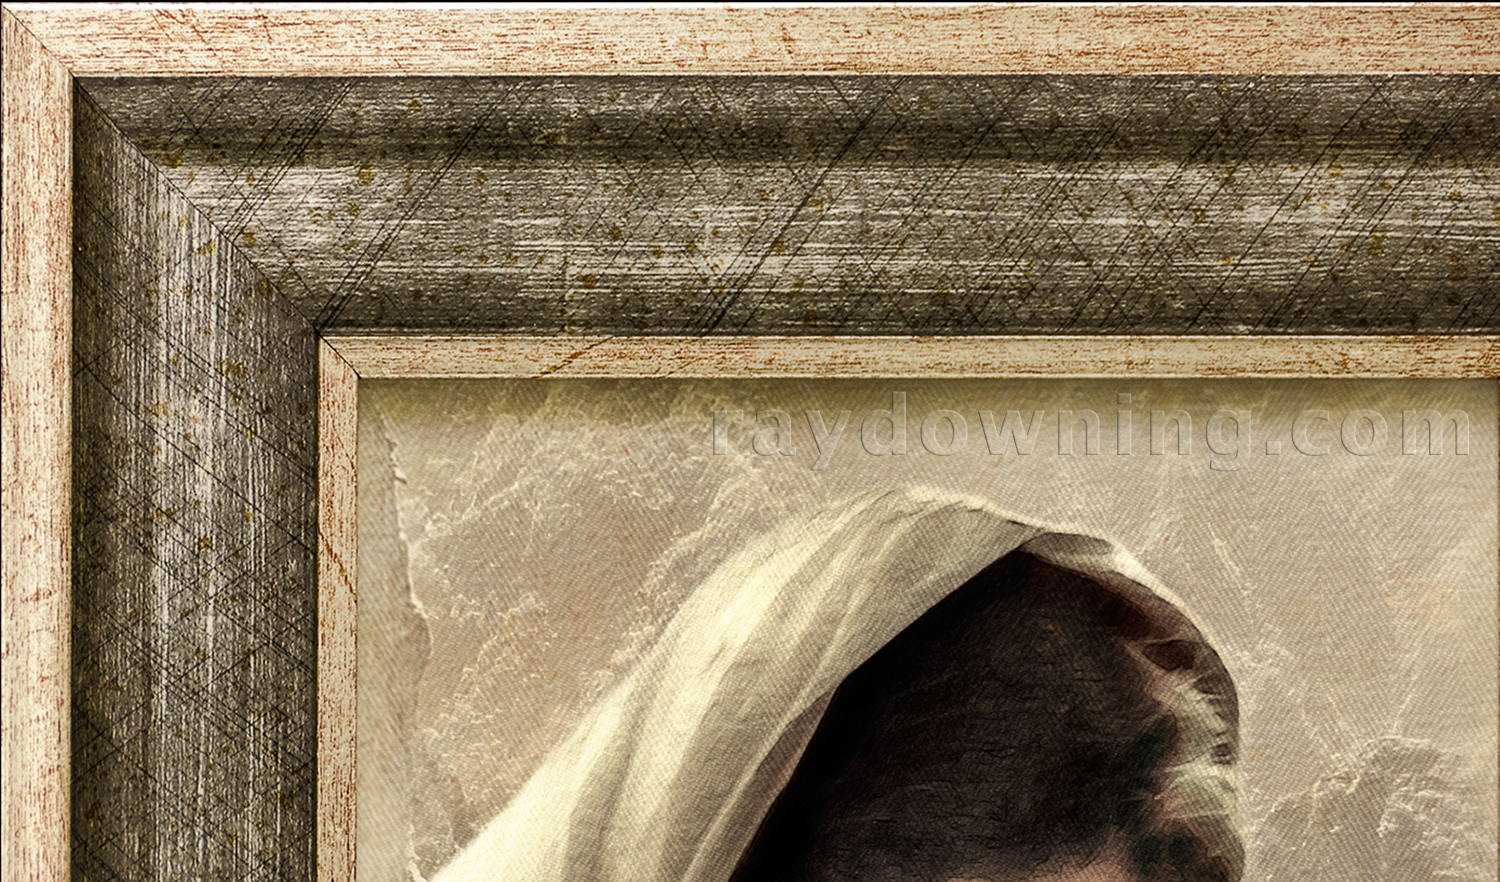 Jesus Holding a Baby Frame detail